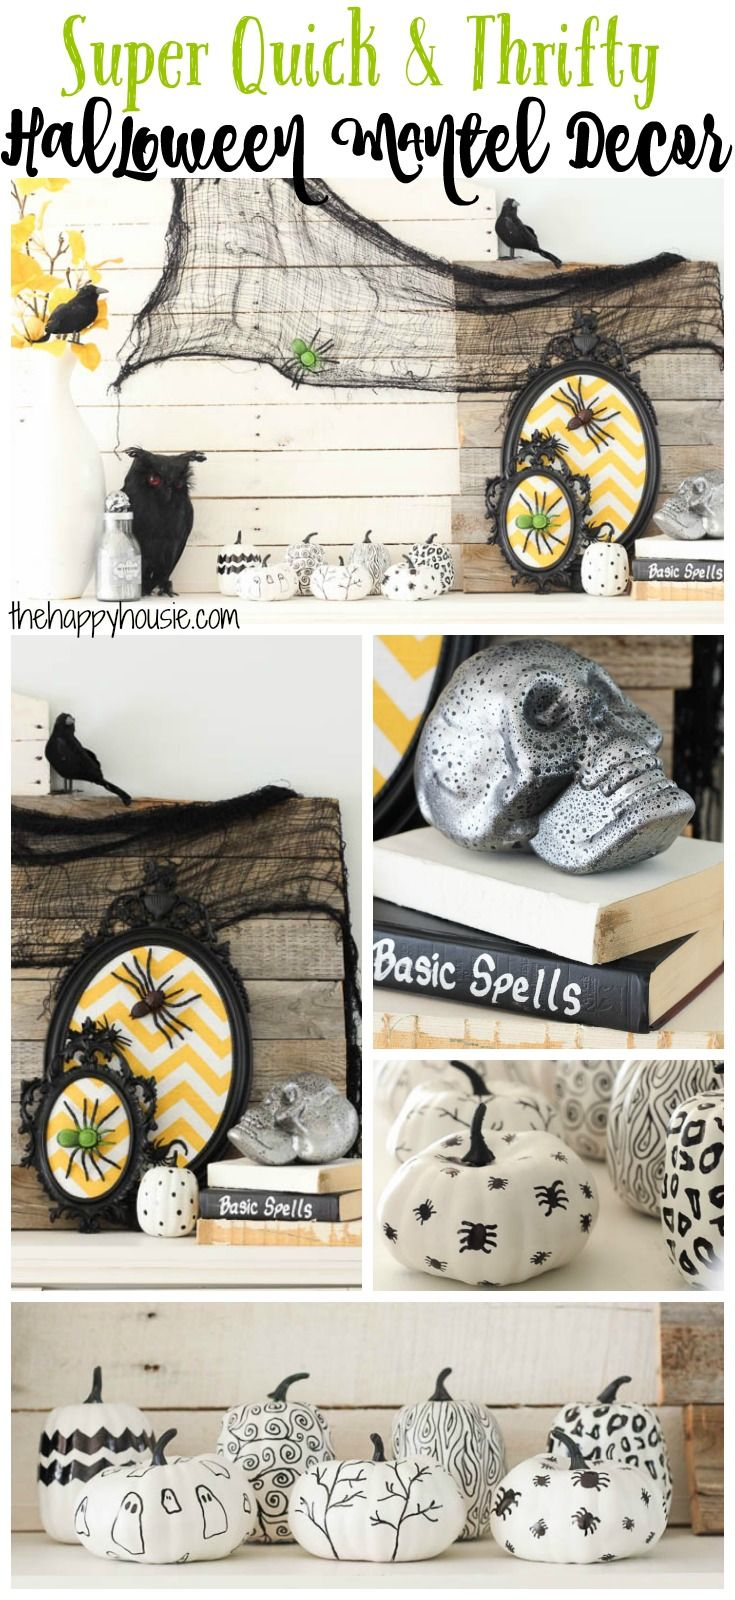 Super Quick and Thrifty Halloween Mantel Decor | Home-made Halloween ...